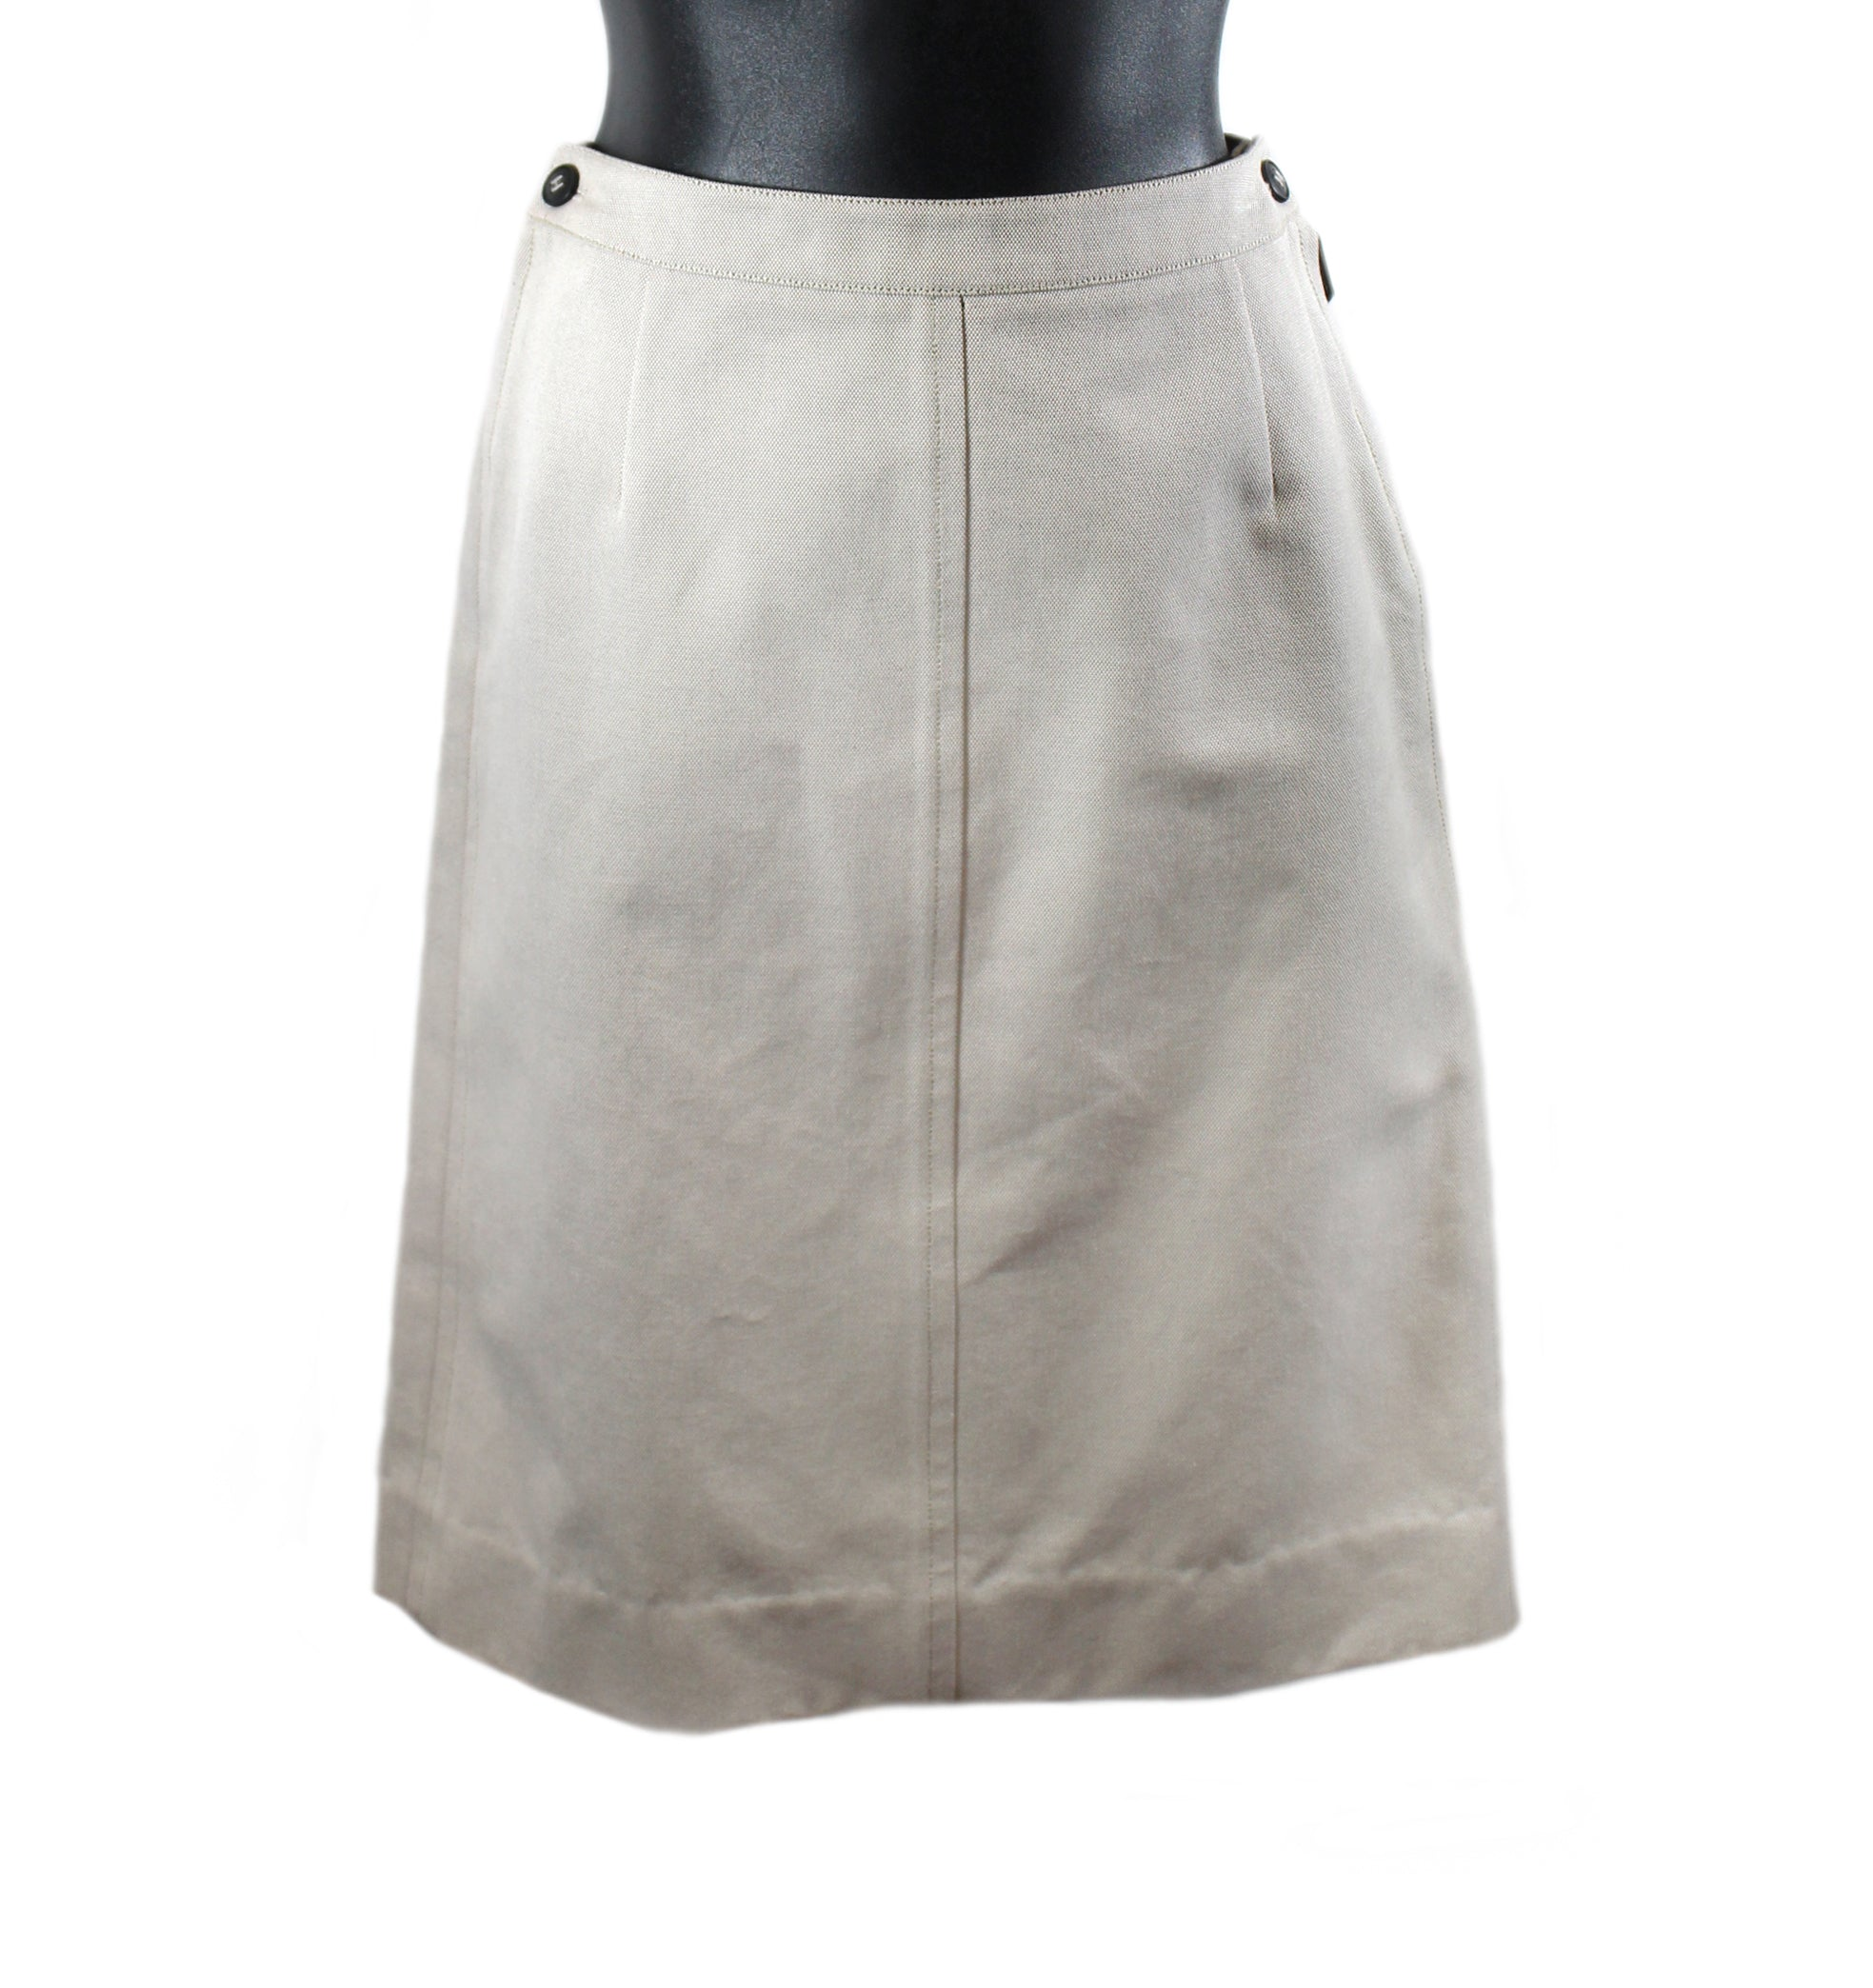 Hermès Beige Cotton Skirt (Size 40)